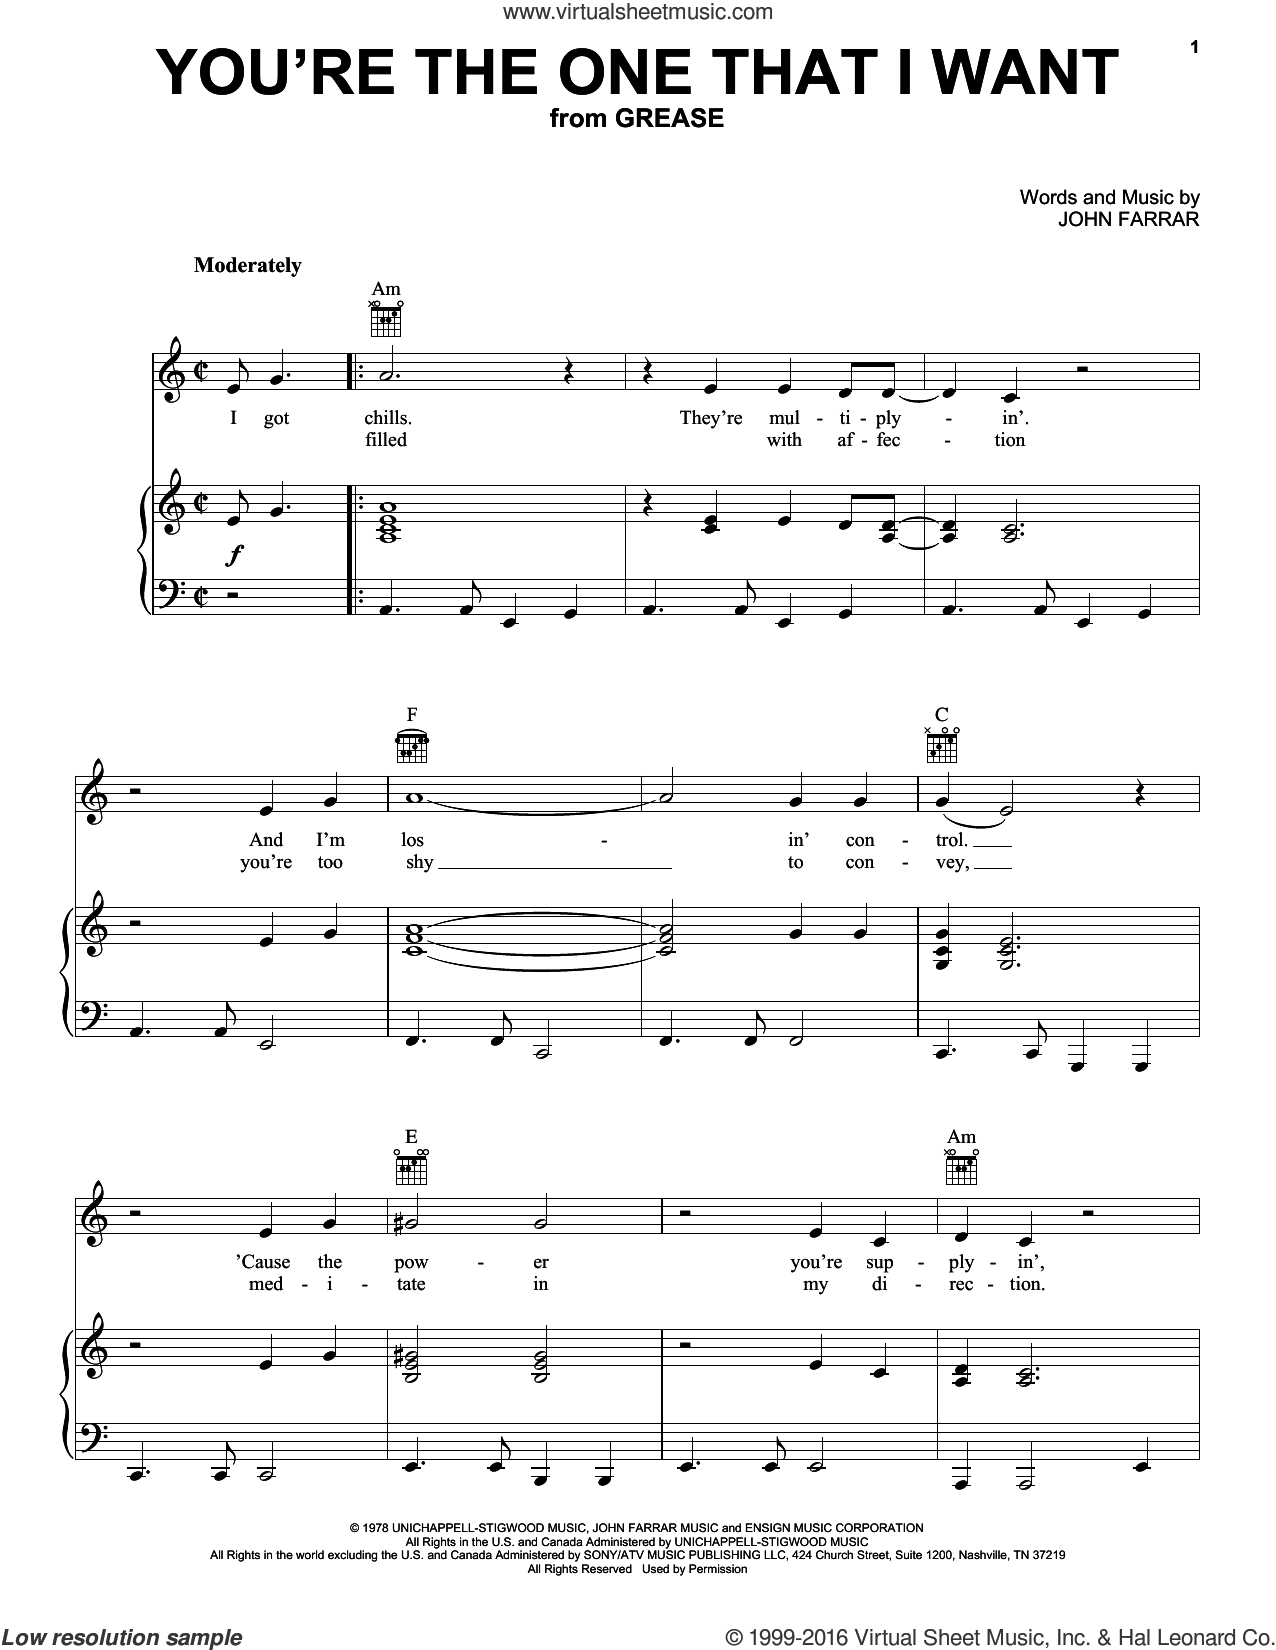 You're The One That I Want sheet music for voice, piano or guitar by John Farrar